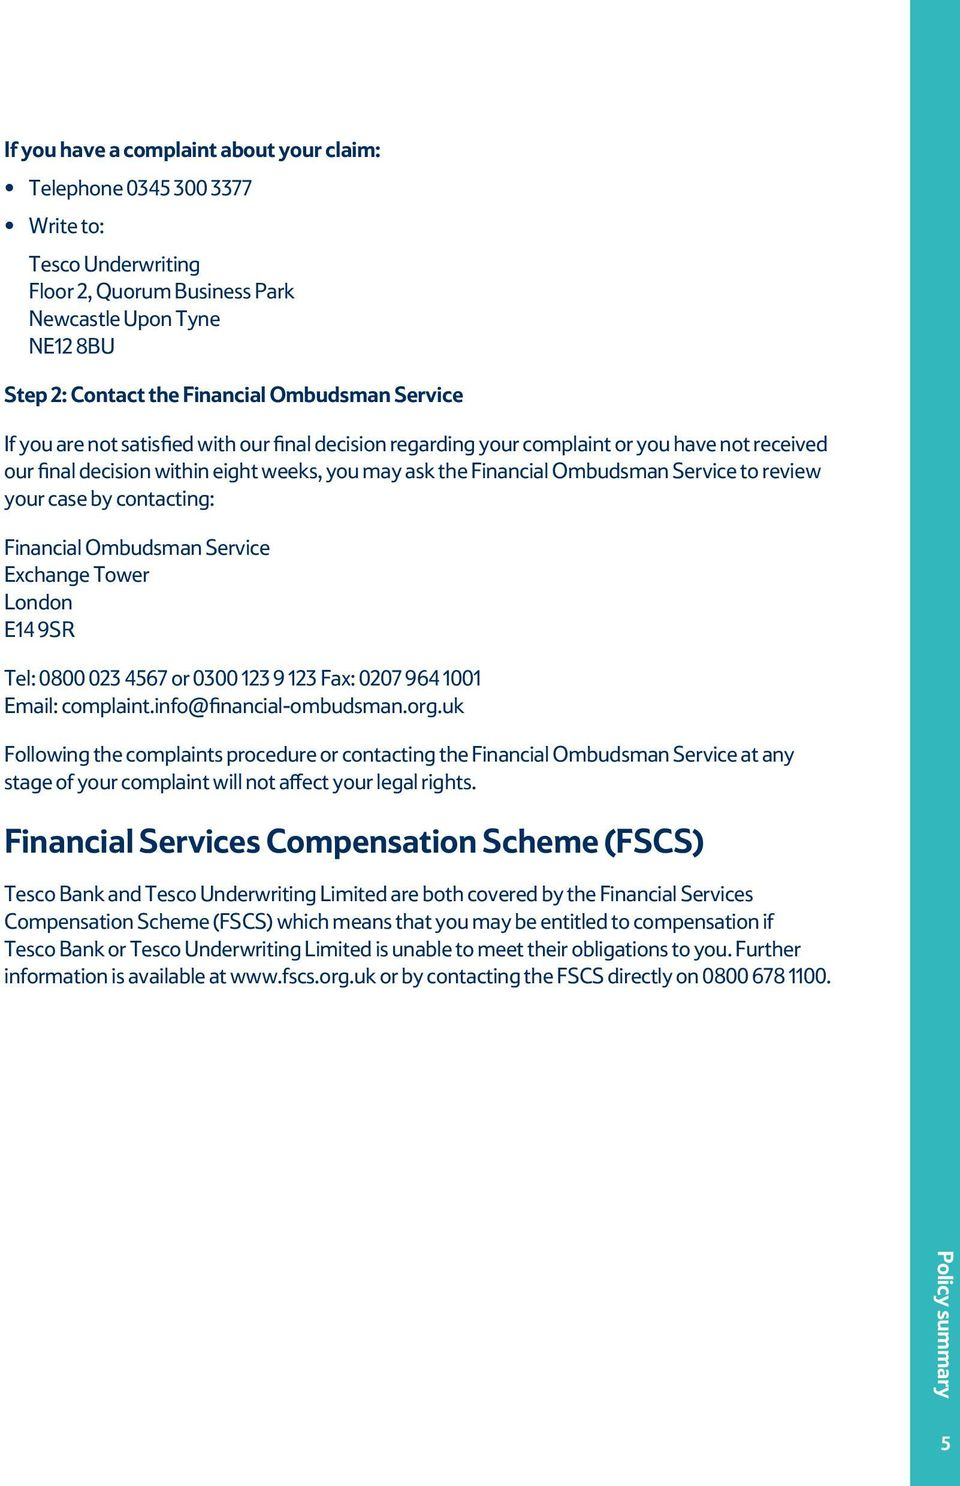 your case by contacting: Financial Ombudsman Service Exchange Tower London E14 9SR Tel: 0800 023 4567 or 0300 123 9 123 Fax: 0207 964 1001 Email: complaint.info@financial-ombudsman.org.